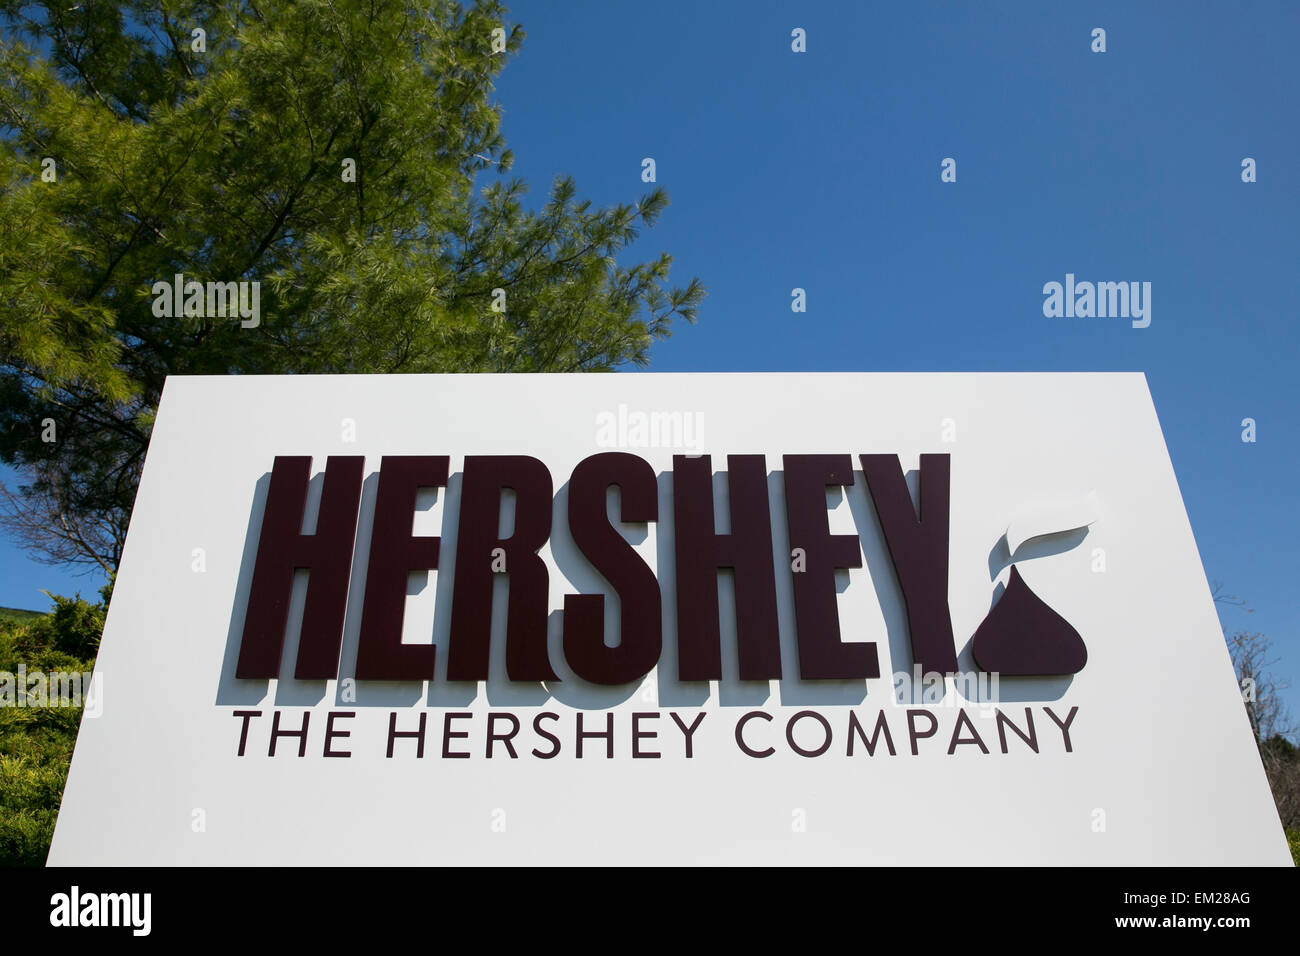 hershey company Today hershey's is one of the biggest chocolate makers in the world in 2010 its annual revenue was close to $55 billion and out of it the profits were $500 million.